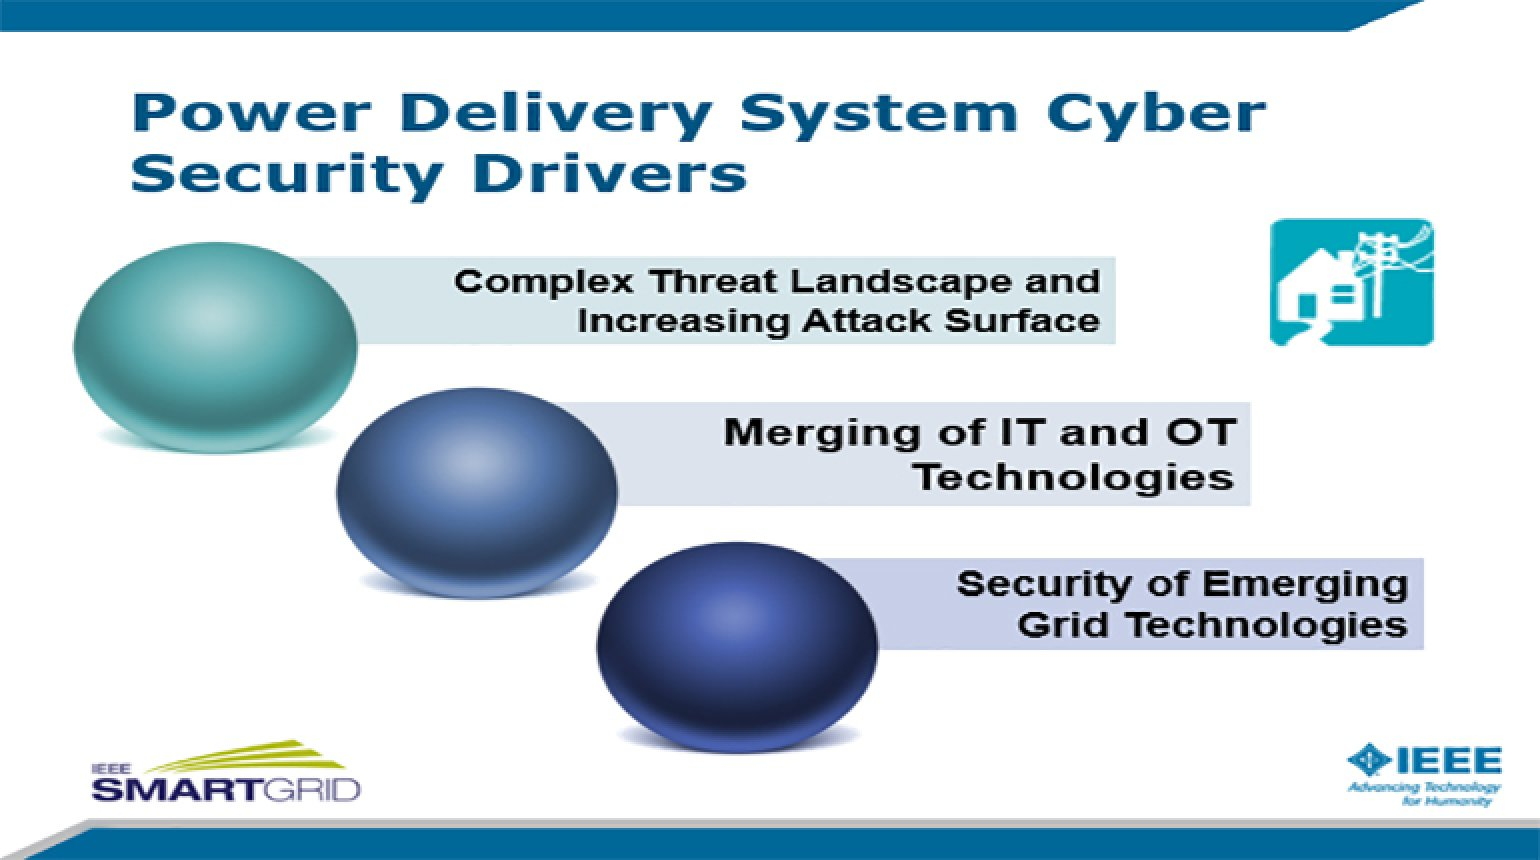 Cyber Security Roadmap for a More Resilient Electric Sector